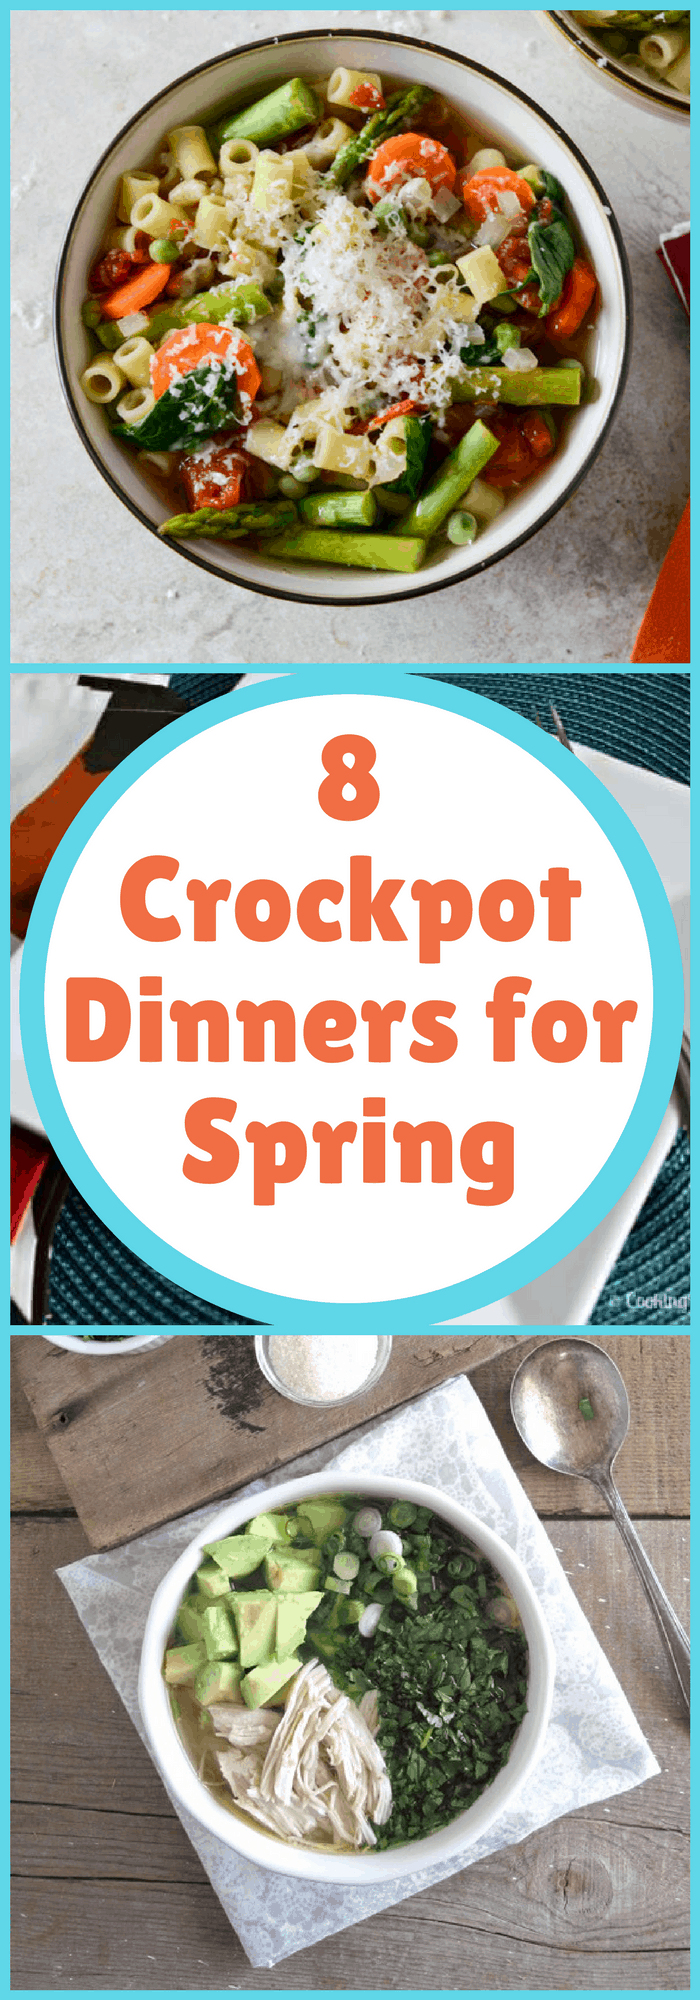 Cooking--8 Crockpot Dinners for Spring--The Organized Mom